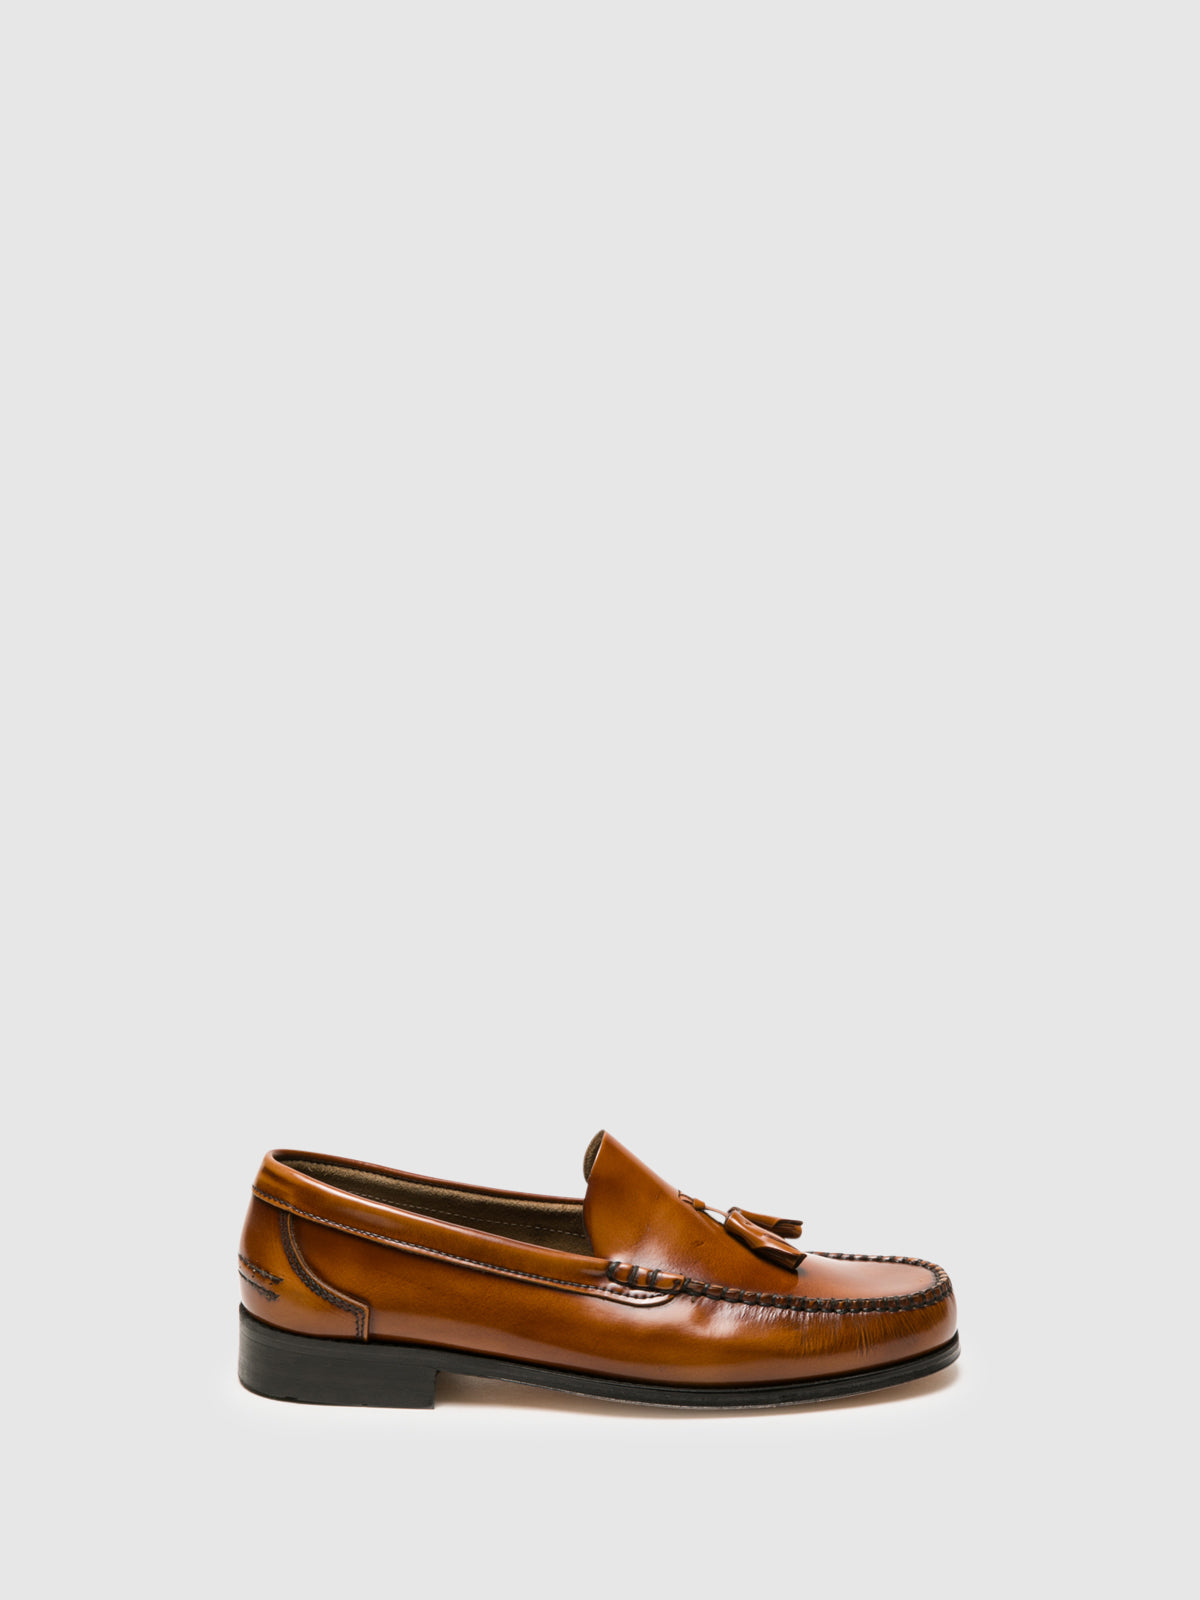 Sotoalto Brown Loafers Shoes